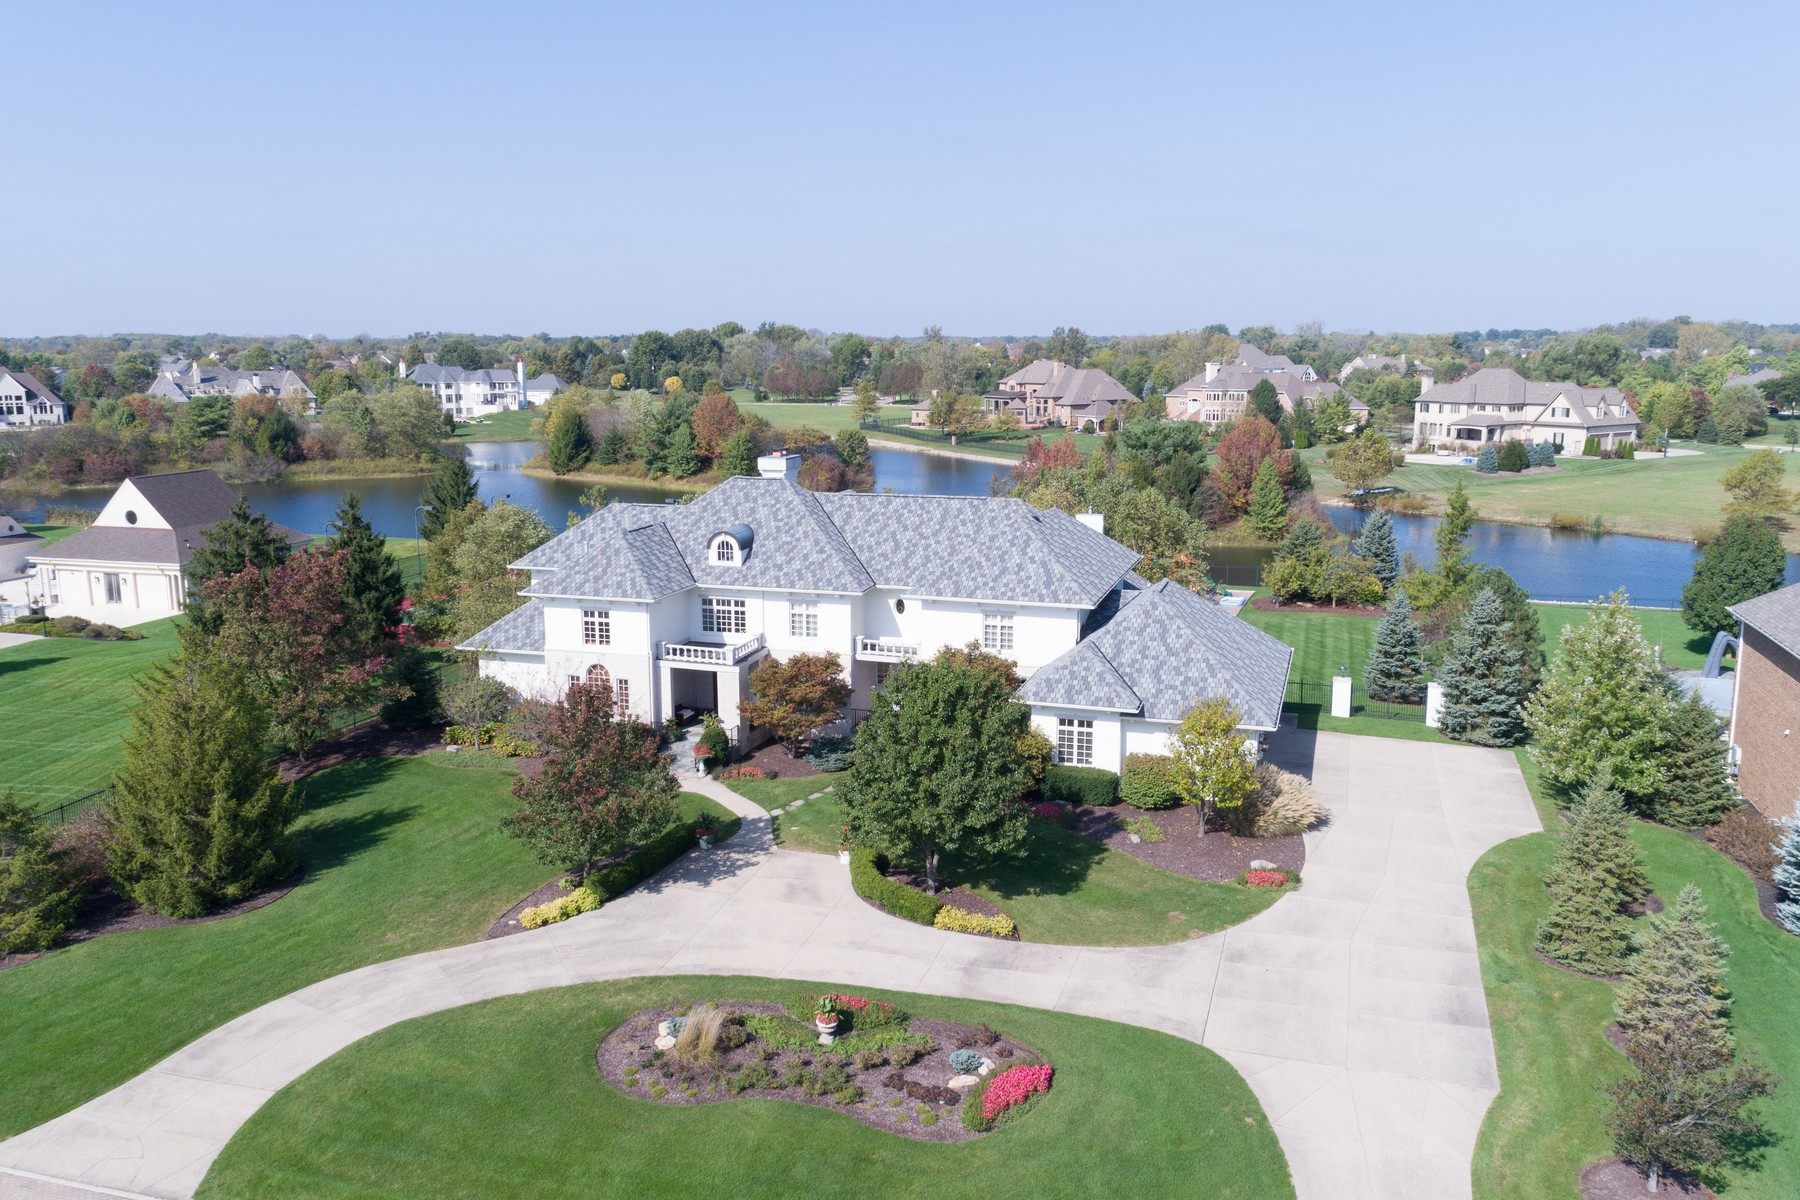 Casa Unifamiliar por un Venta en Exquisite Estate in Bridlebourne 3528 Hintocks Circle Carmel, Indiana 46032 Estados Unidos